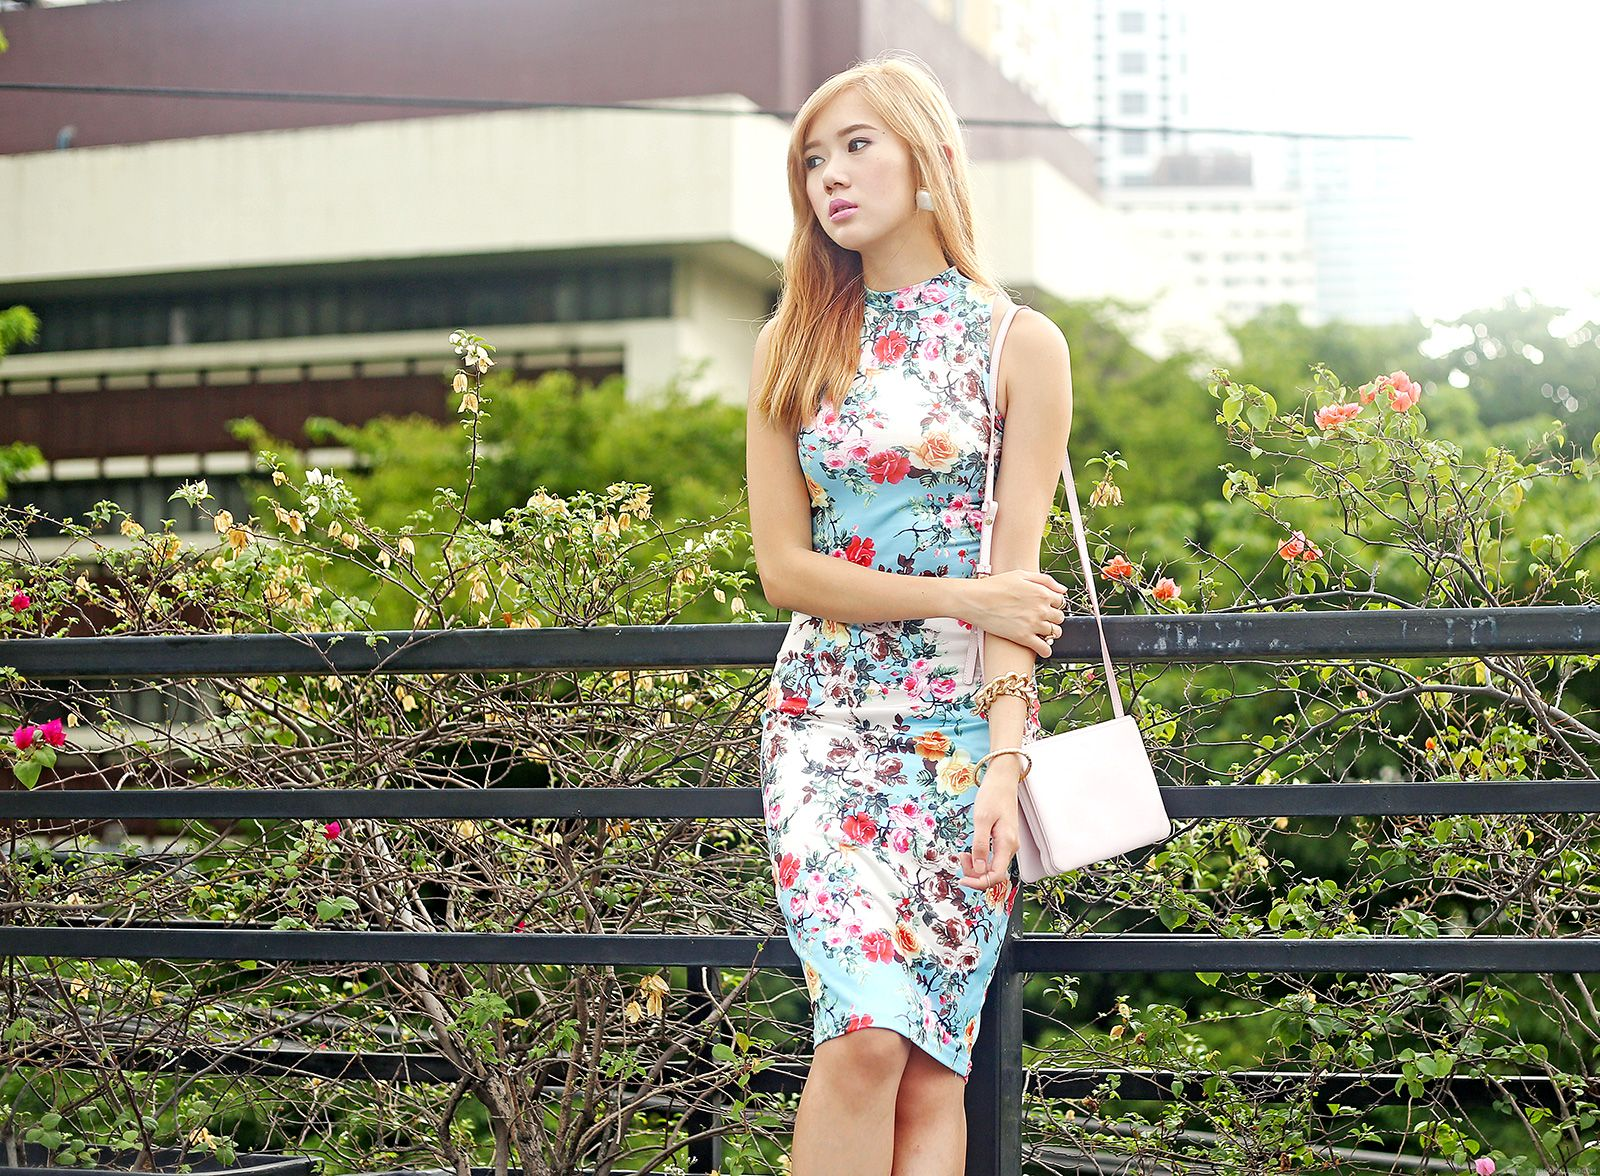 6ks Floral Dress | Camille Tries To Blog